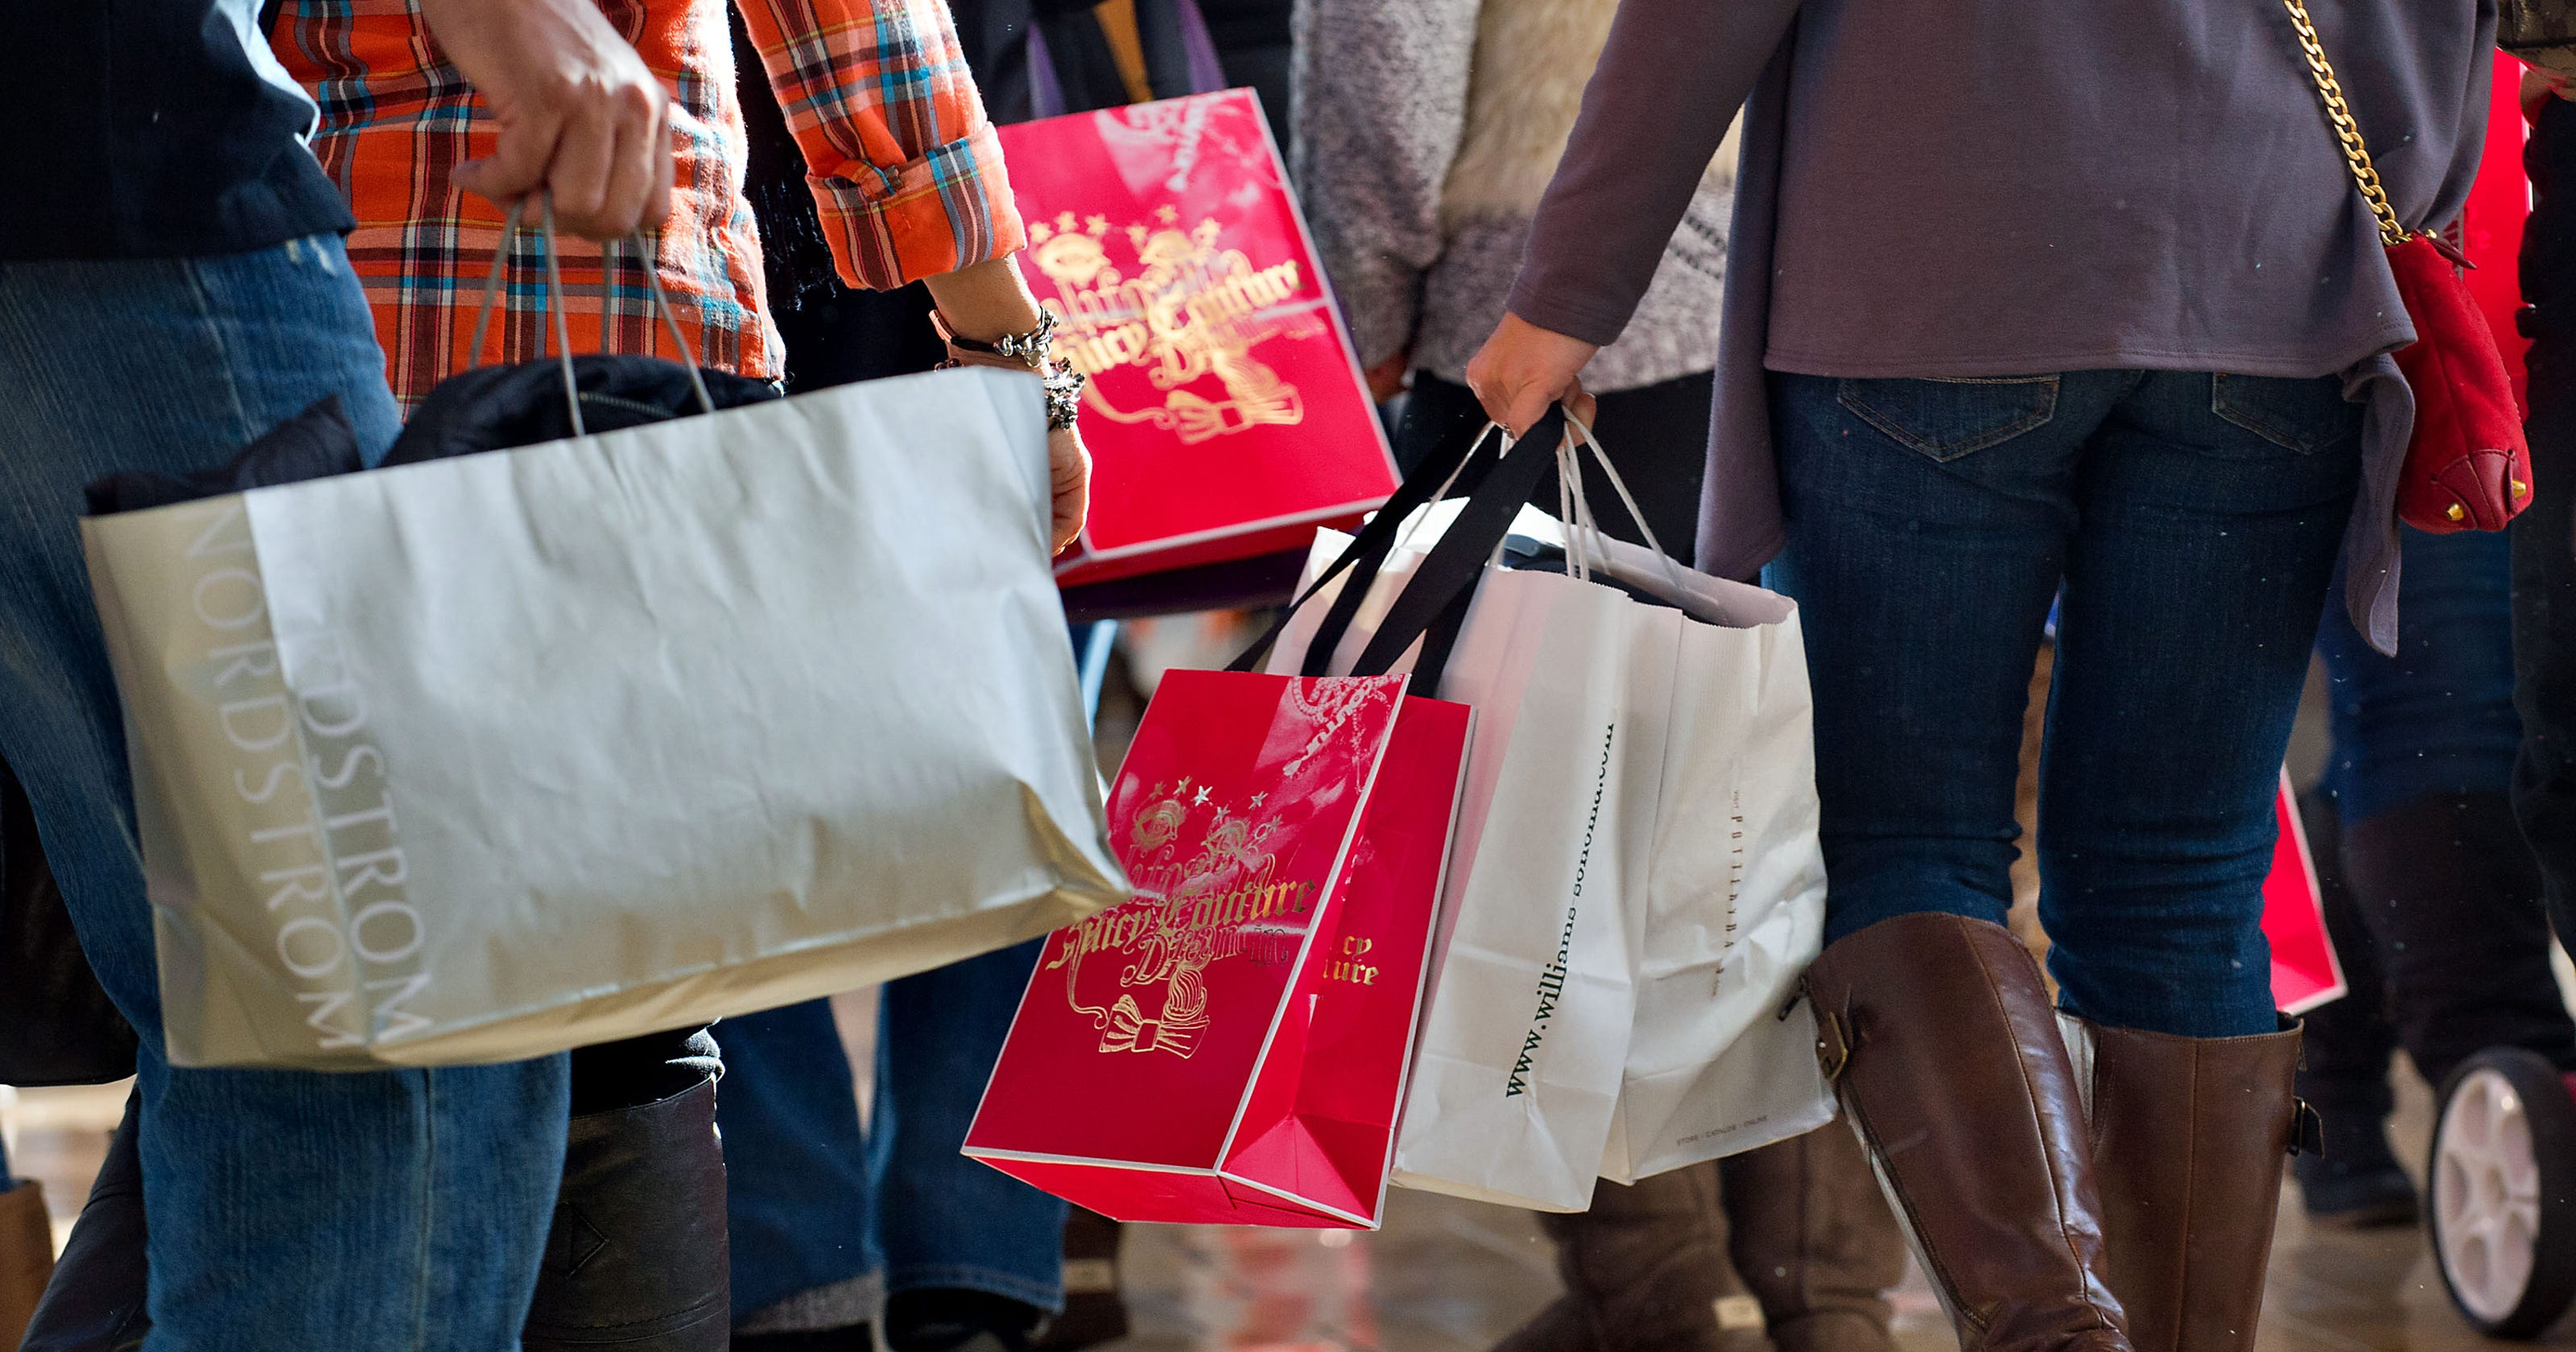 319e4ca60 Black Friday 2017: Best retail locations to shop, state-by-state